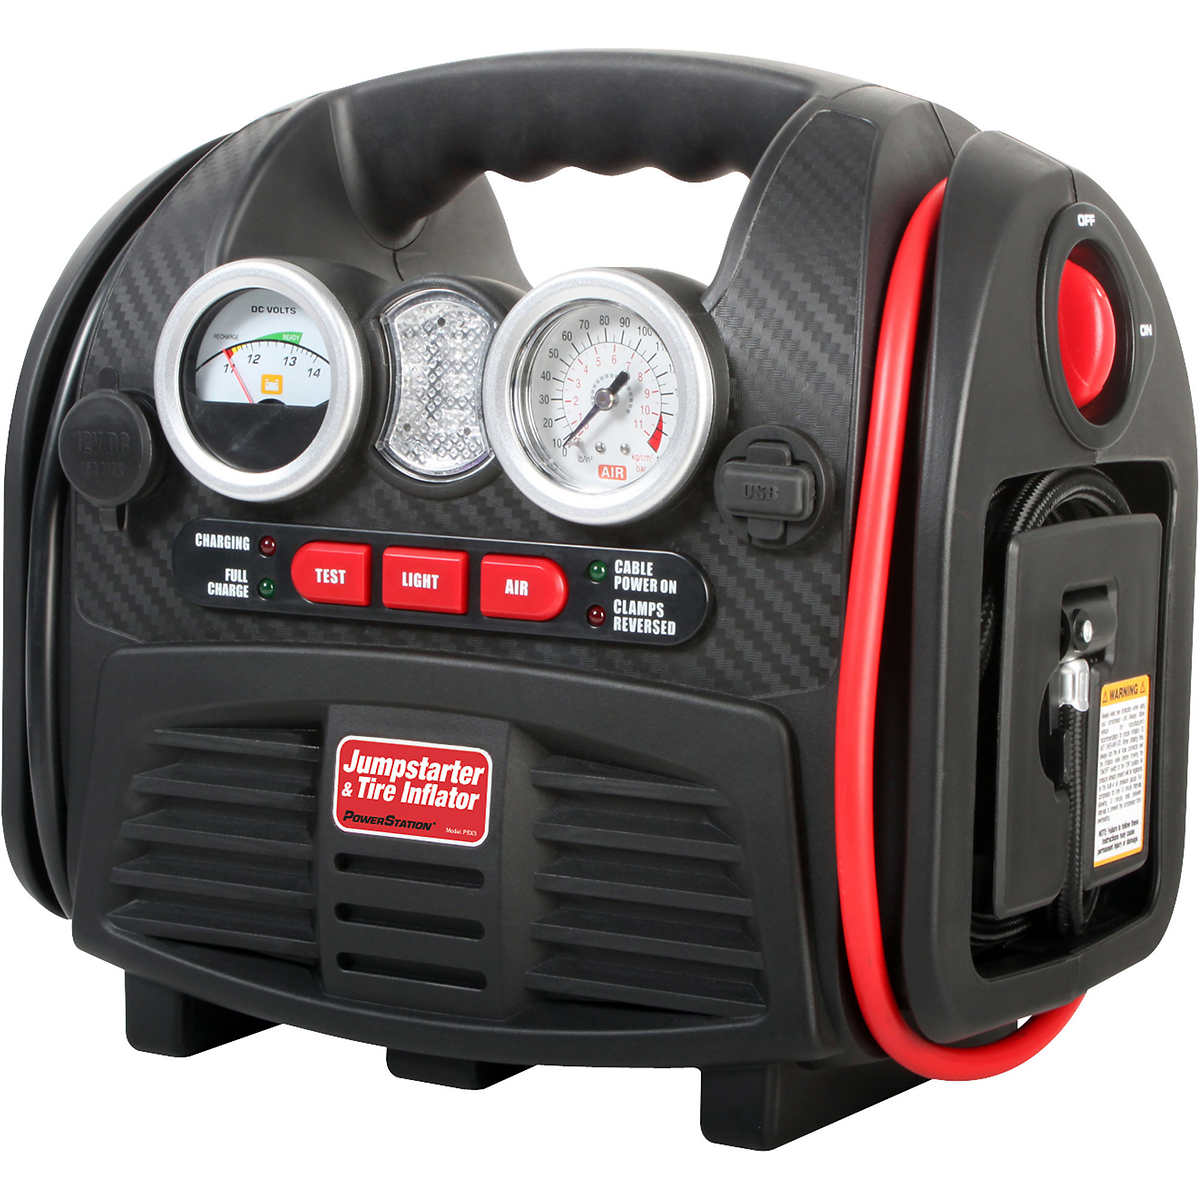 Image result for auto booster costco with pump